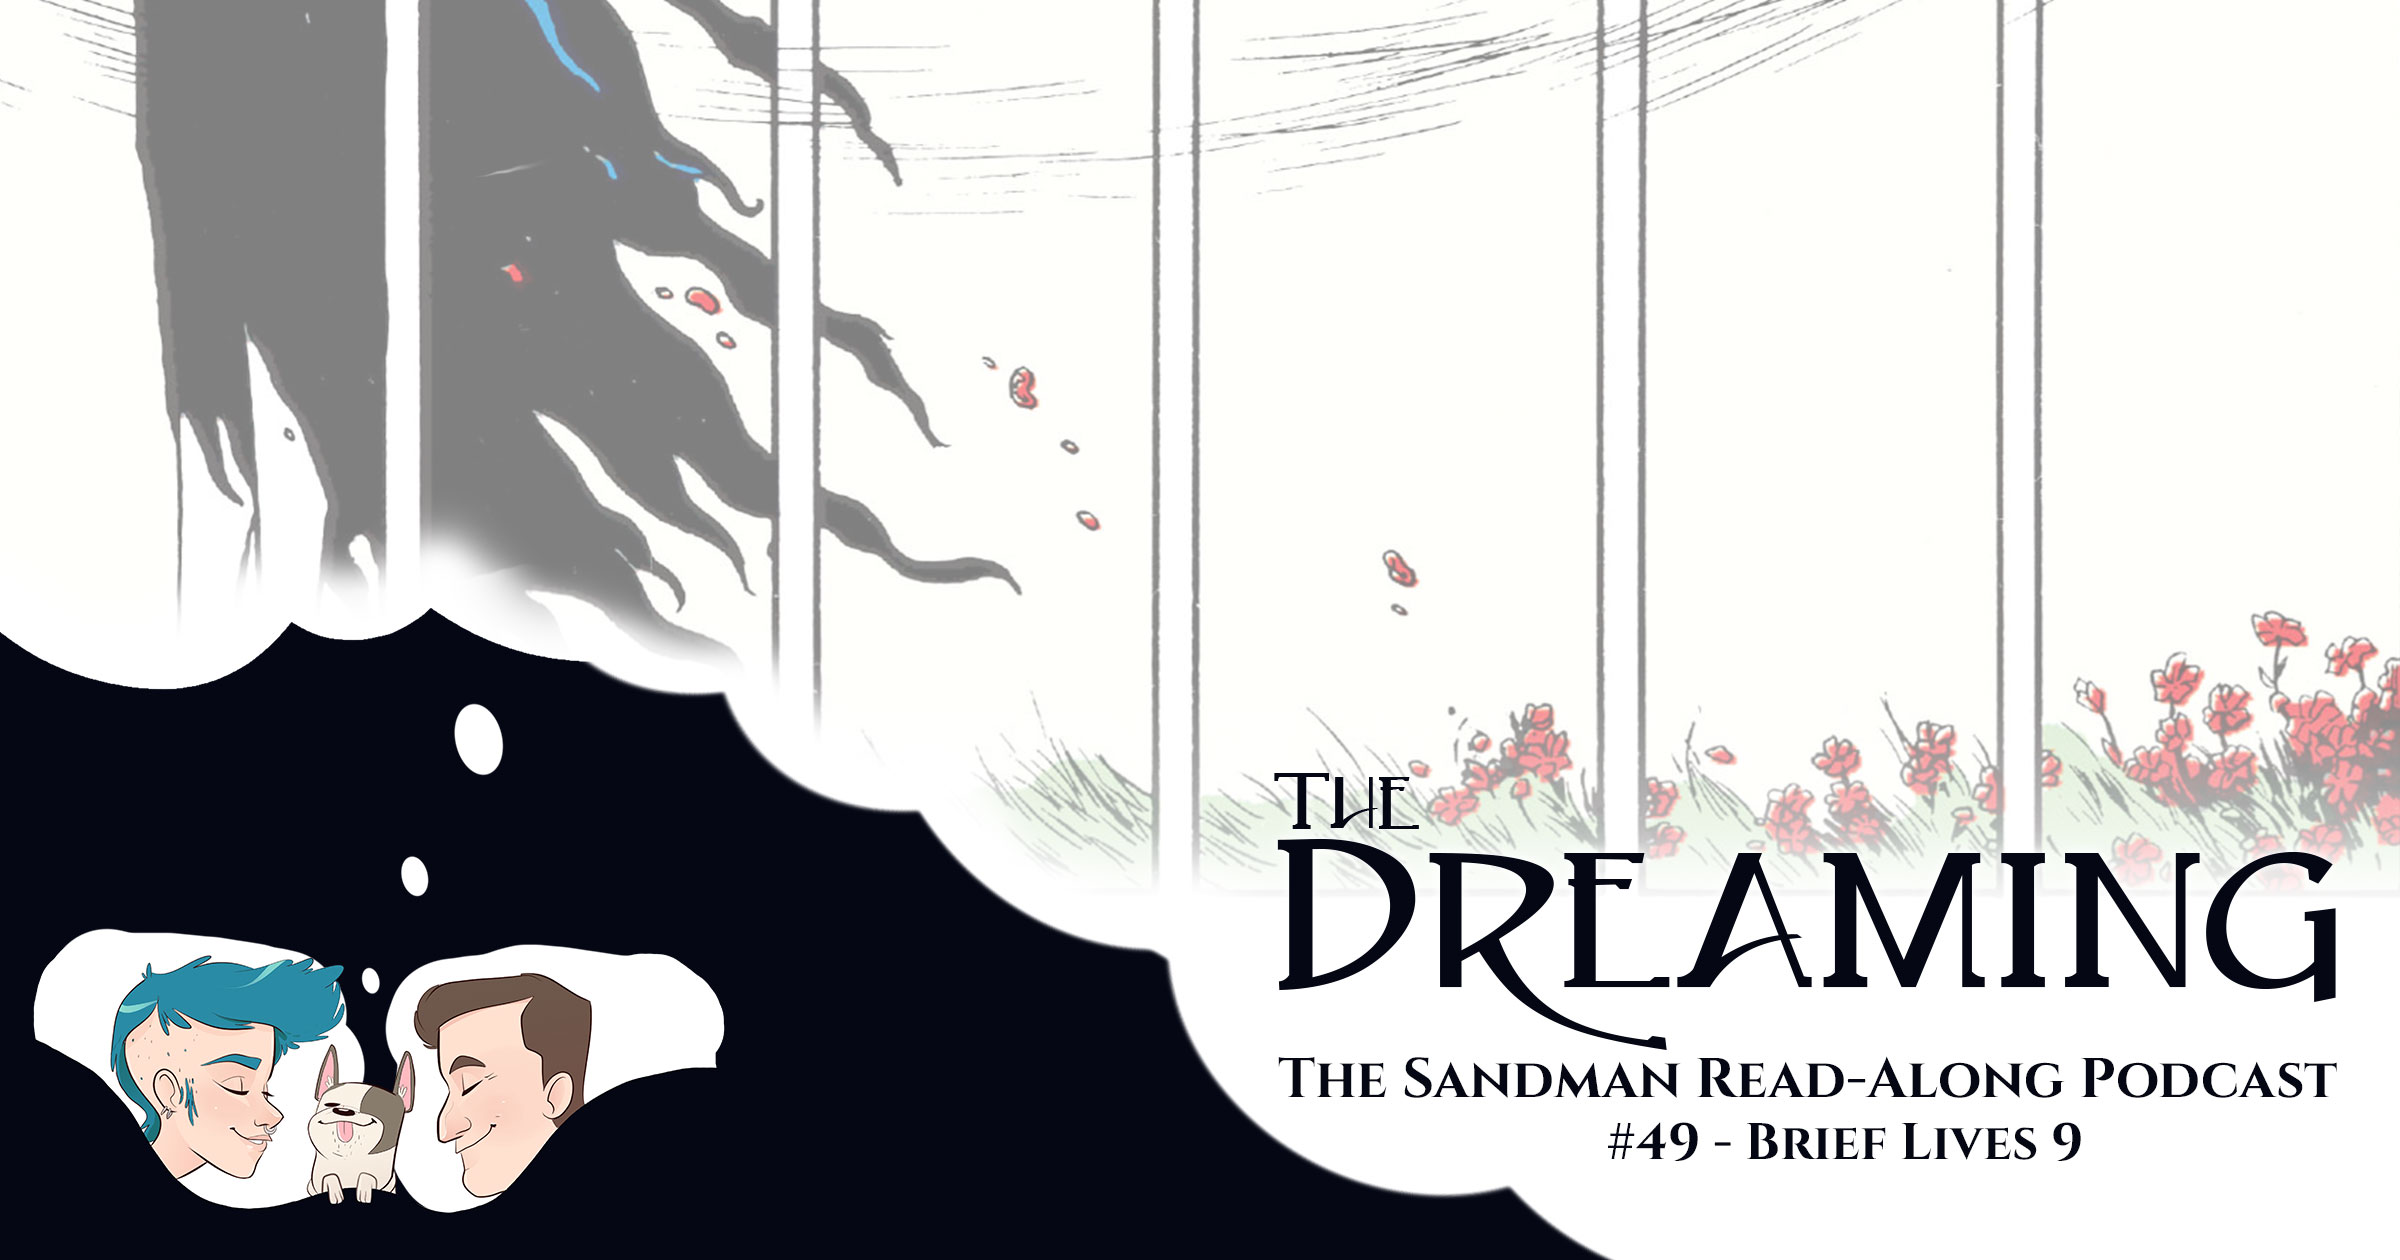 thedreaming-52-sandman49-titlecard